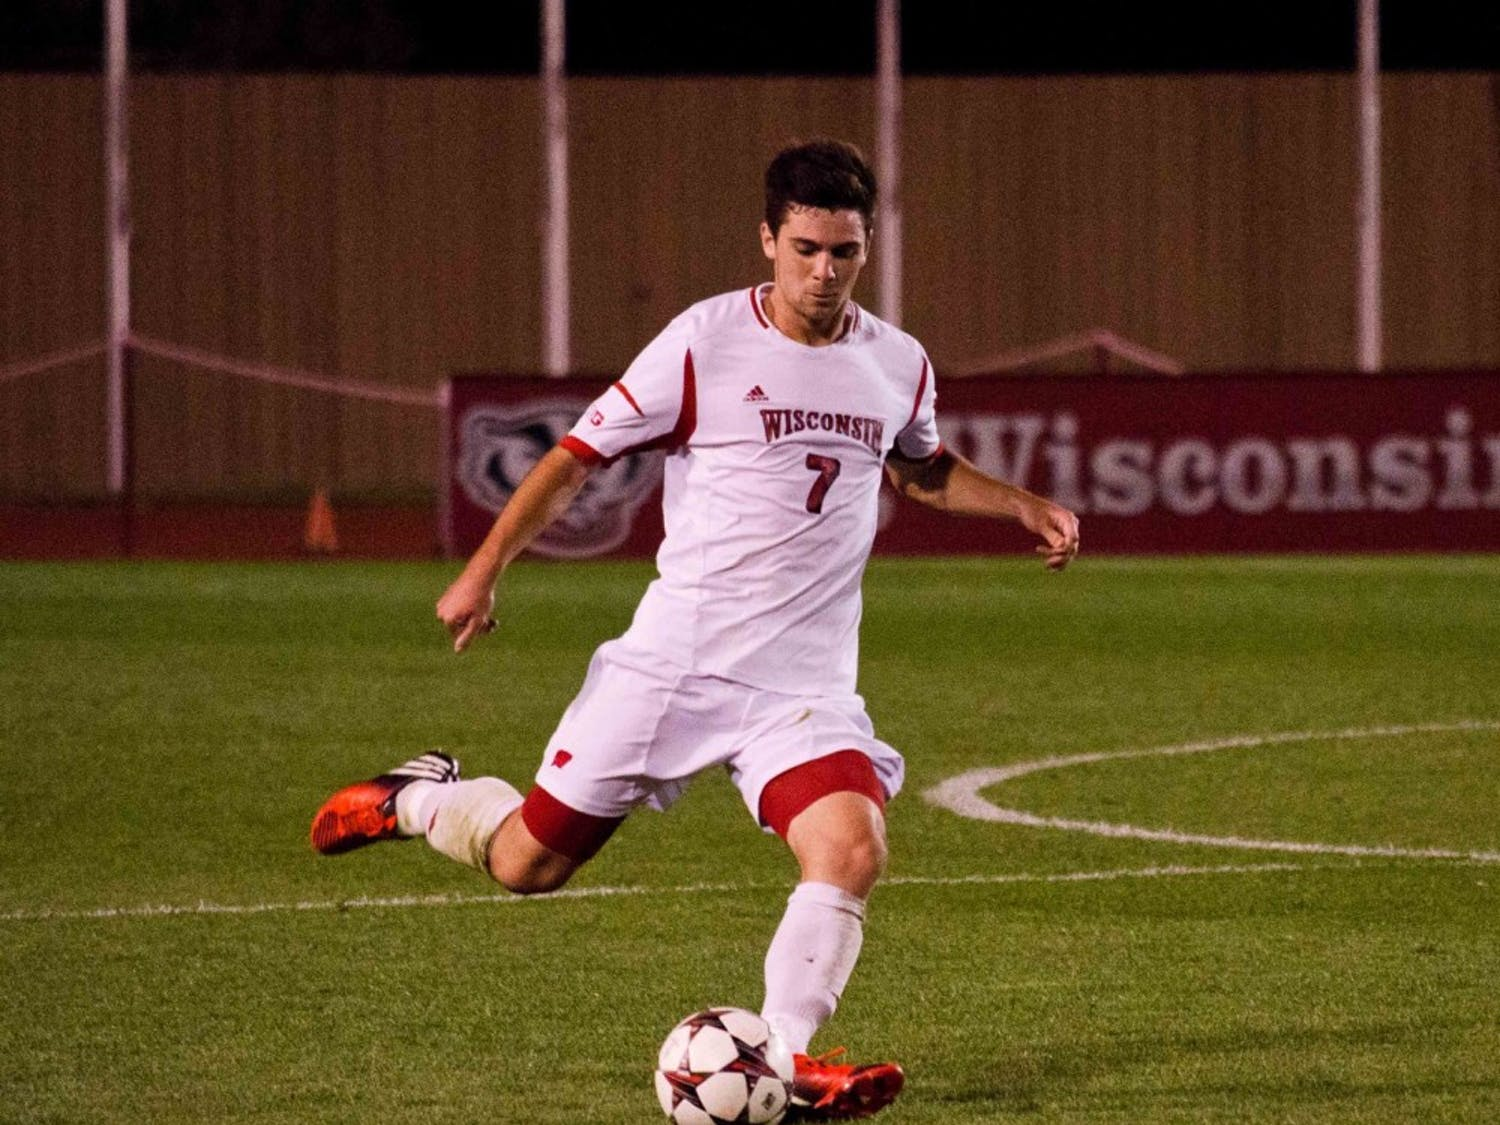 Surrounded by young teammates, junior midfielder Drew Conner finds himself in a leadership role this season.